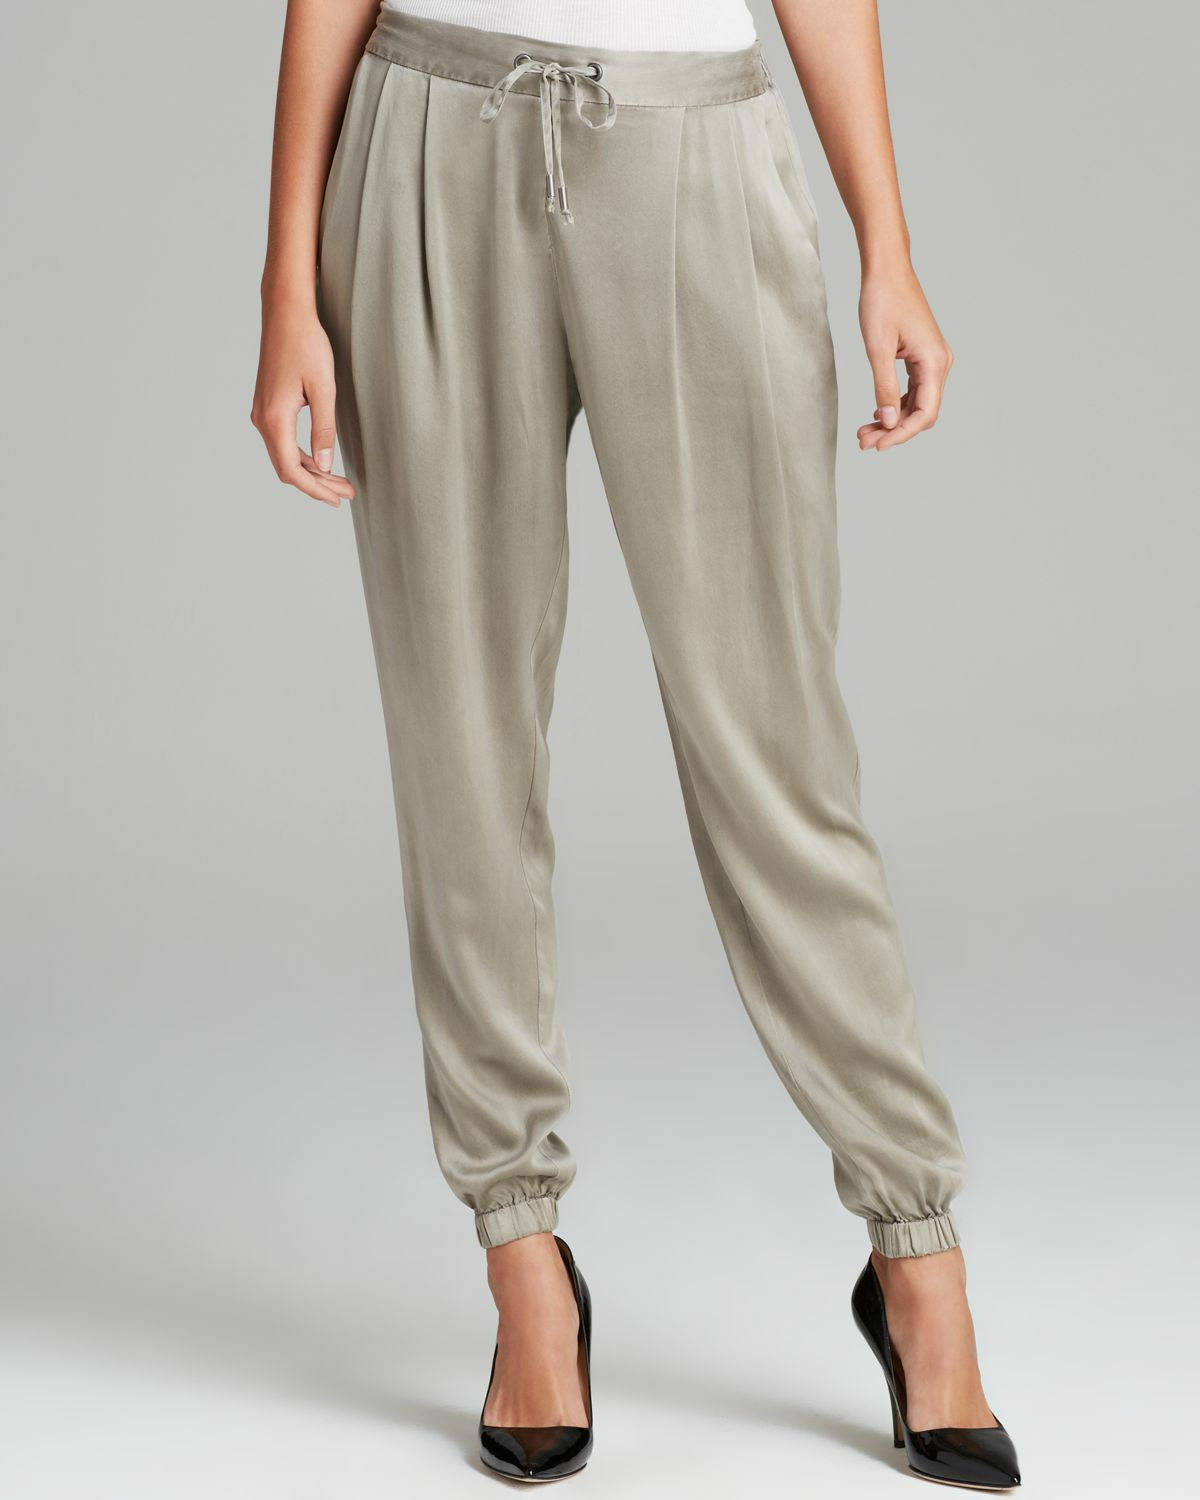 248 BNWT EILEEN FISHER Silk Charmeuse STONE Slouchy Ankle Pants  PS PM